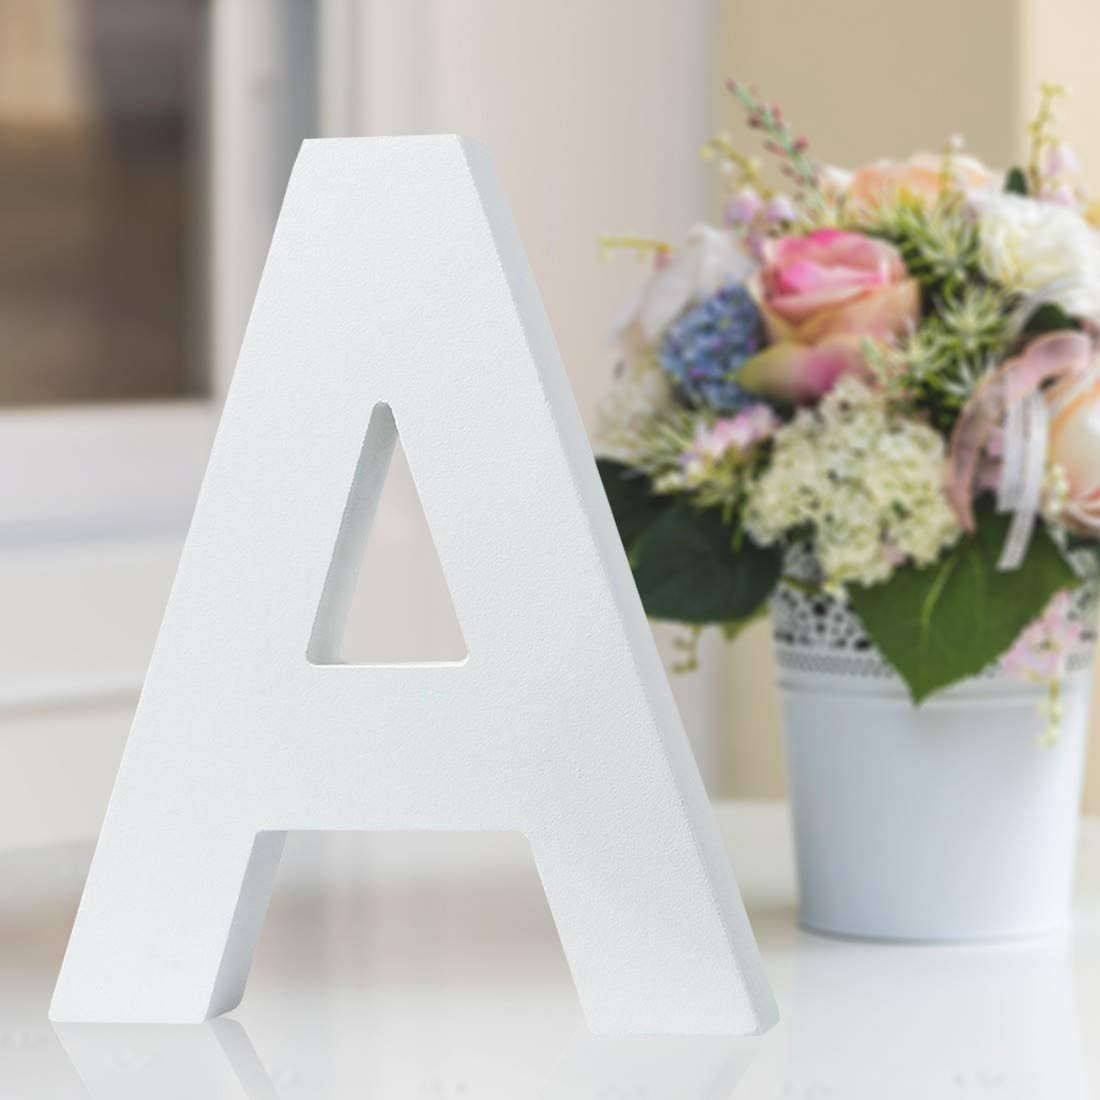 Multiple Sizes Decorative Free-Standing Alphabet Letters for Children Kids Bedroom Wedding Birthday Party Home Decor (A, 5inch / 12.7cm)